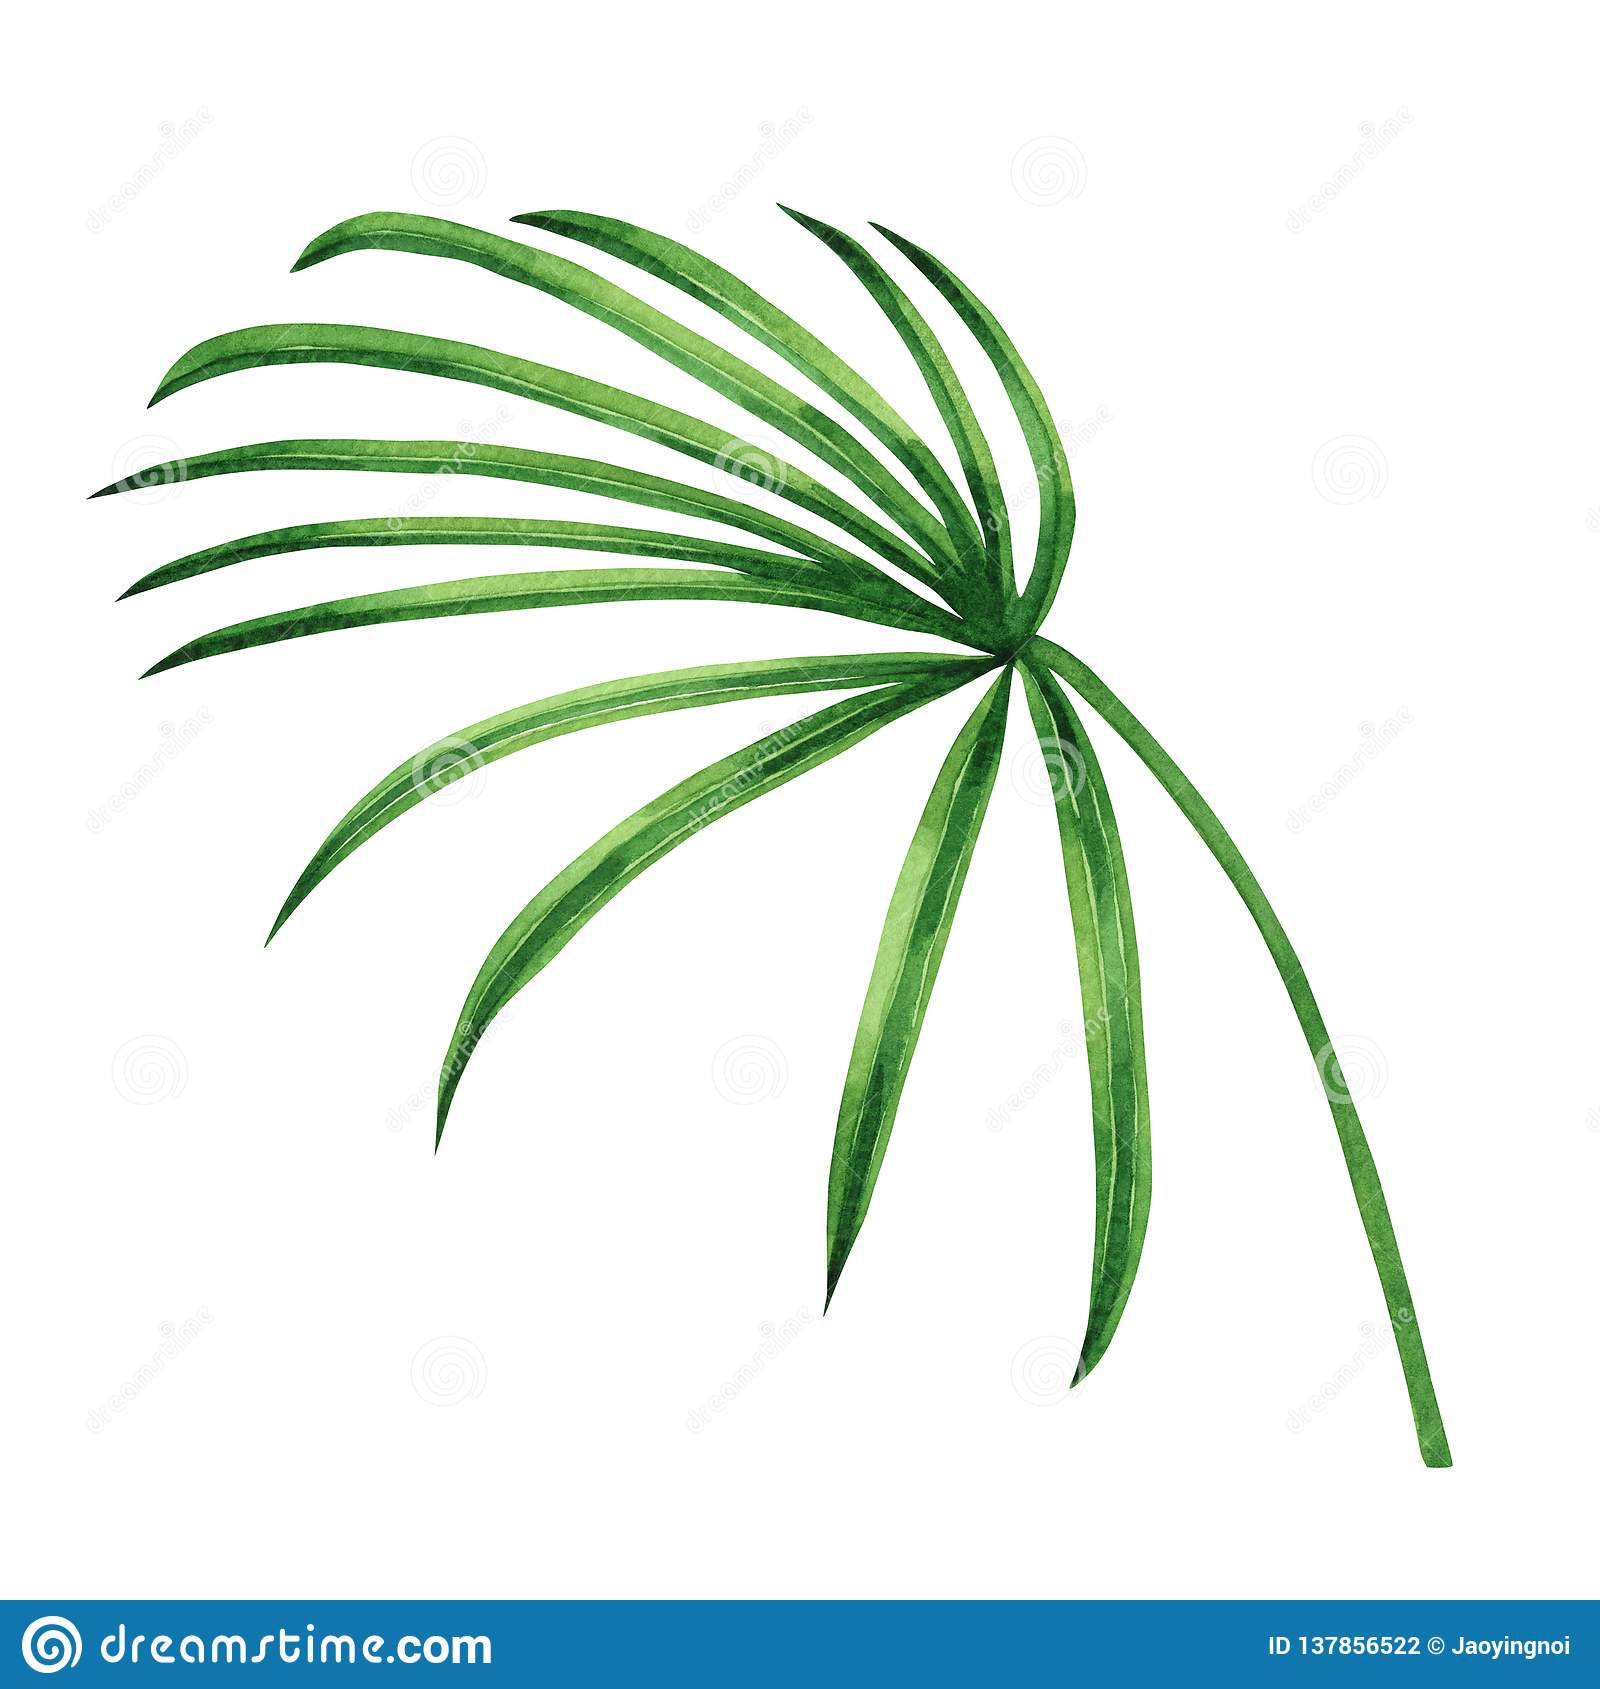 Watercolor Painting Coconut Palm Leaf Green Leaves Isolated On